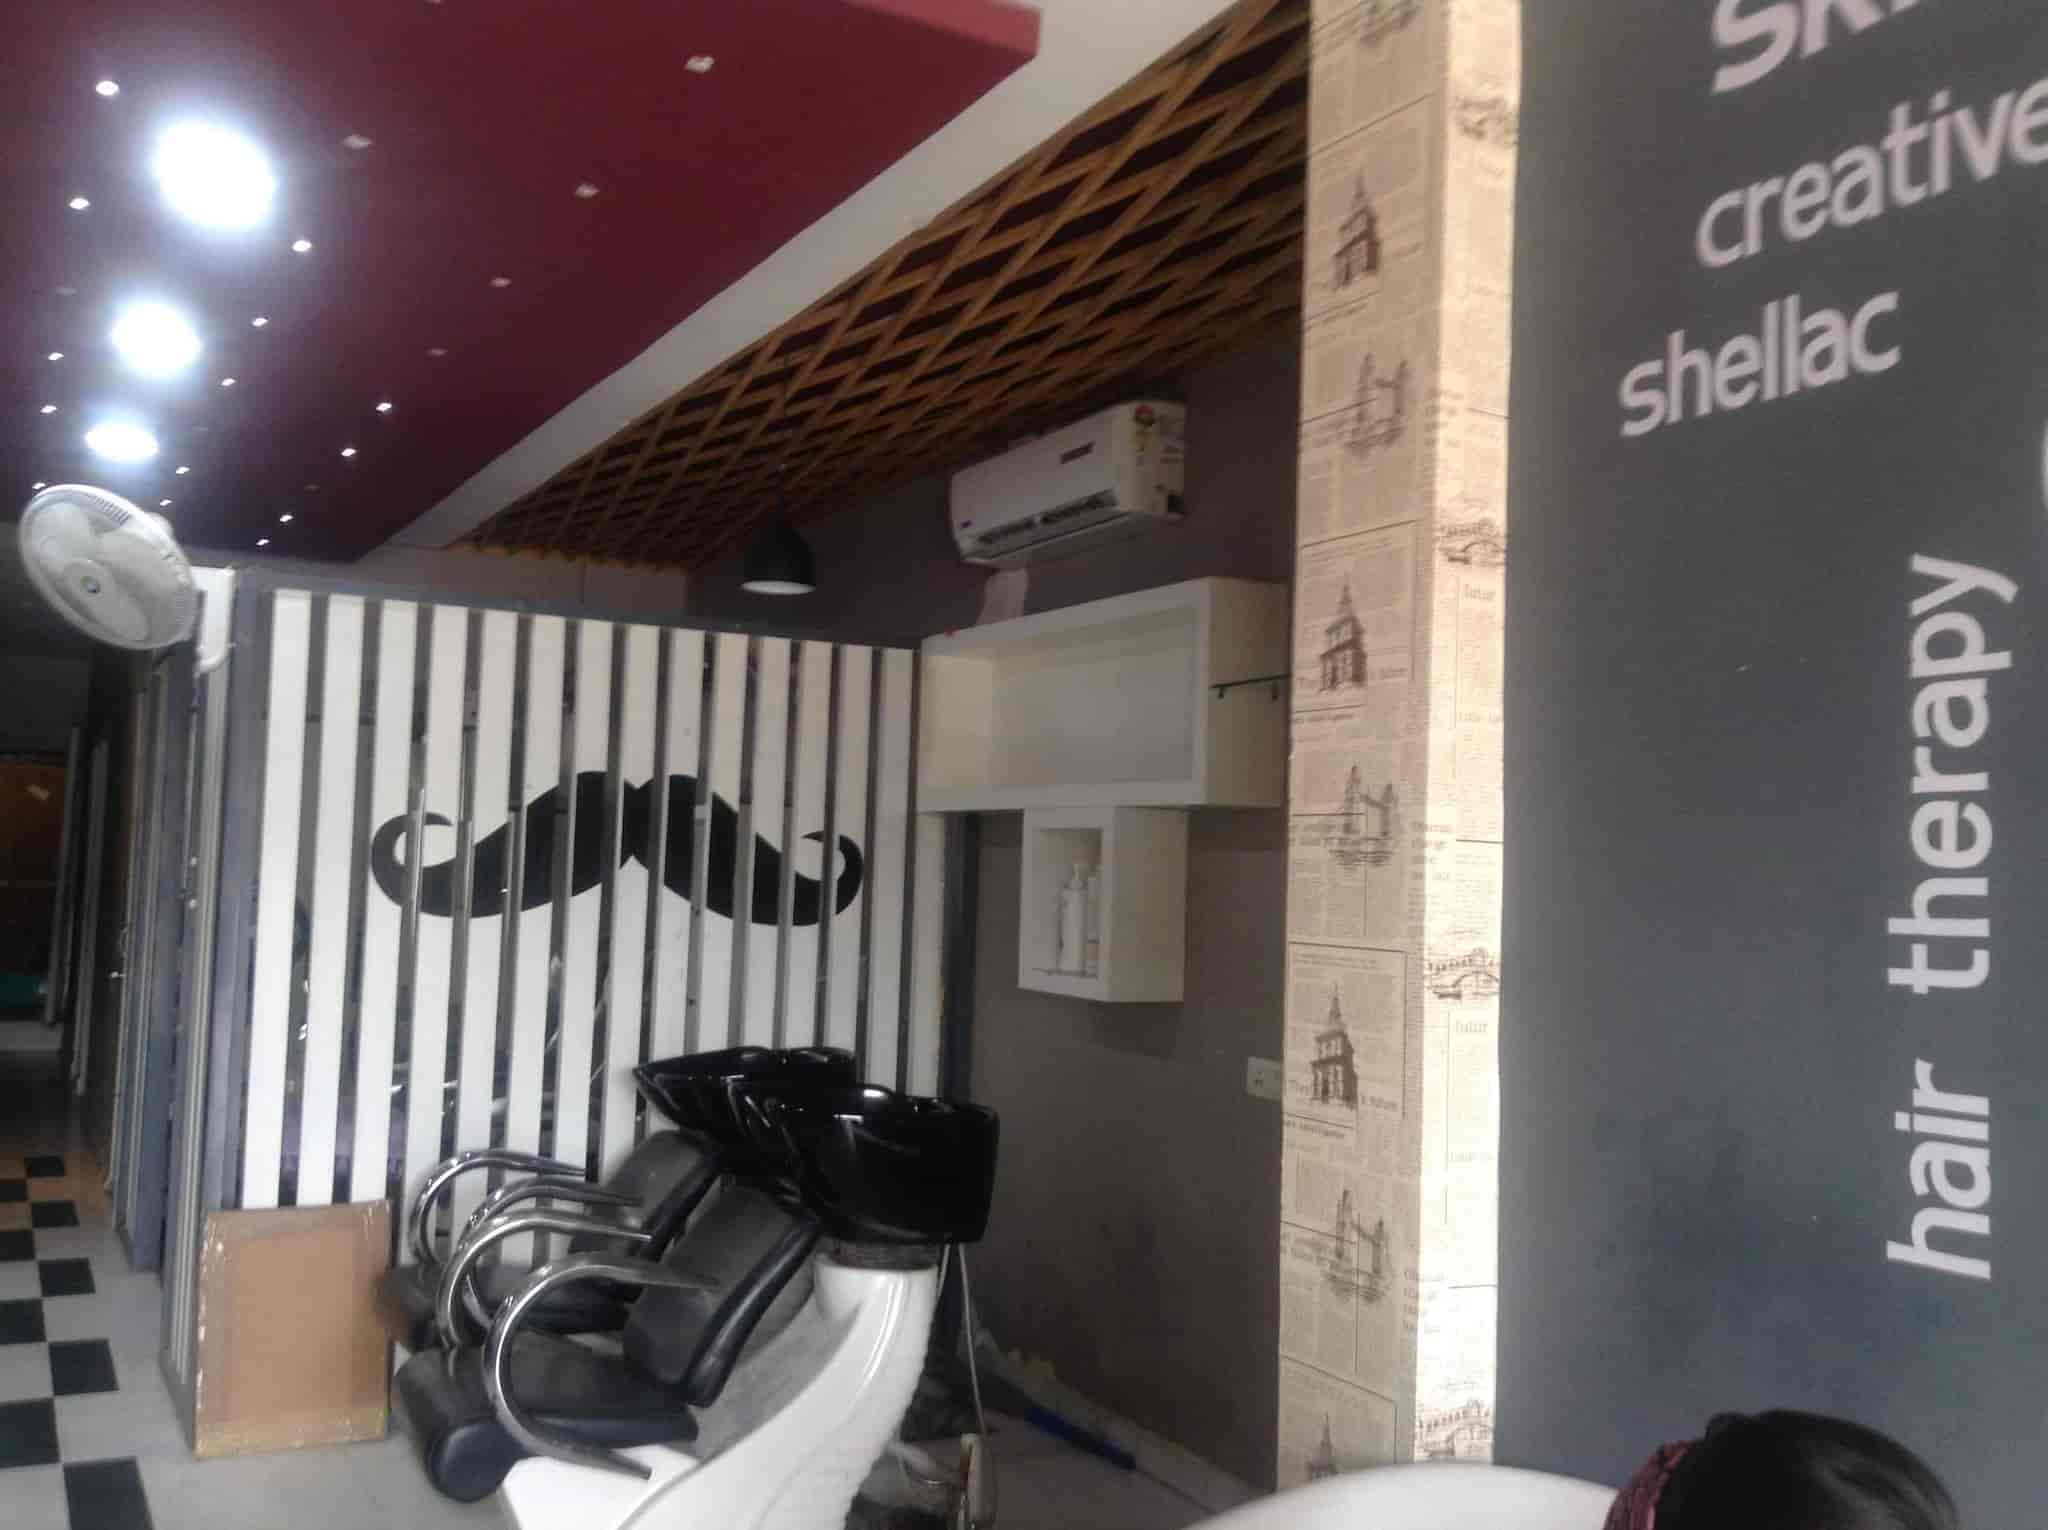 Revive salon n spa Photos, Mohali, Chandigarh- Pictures